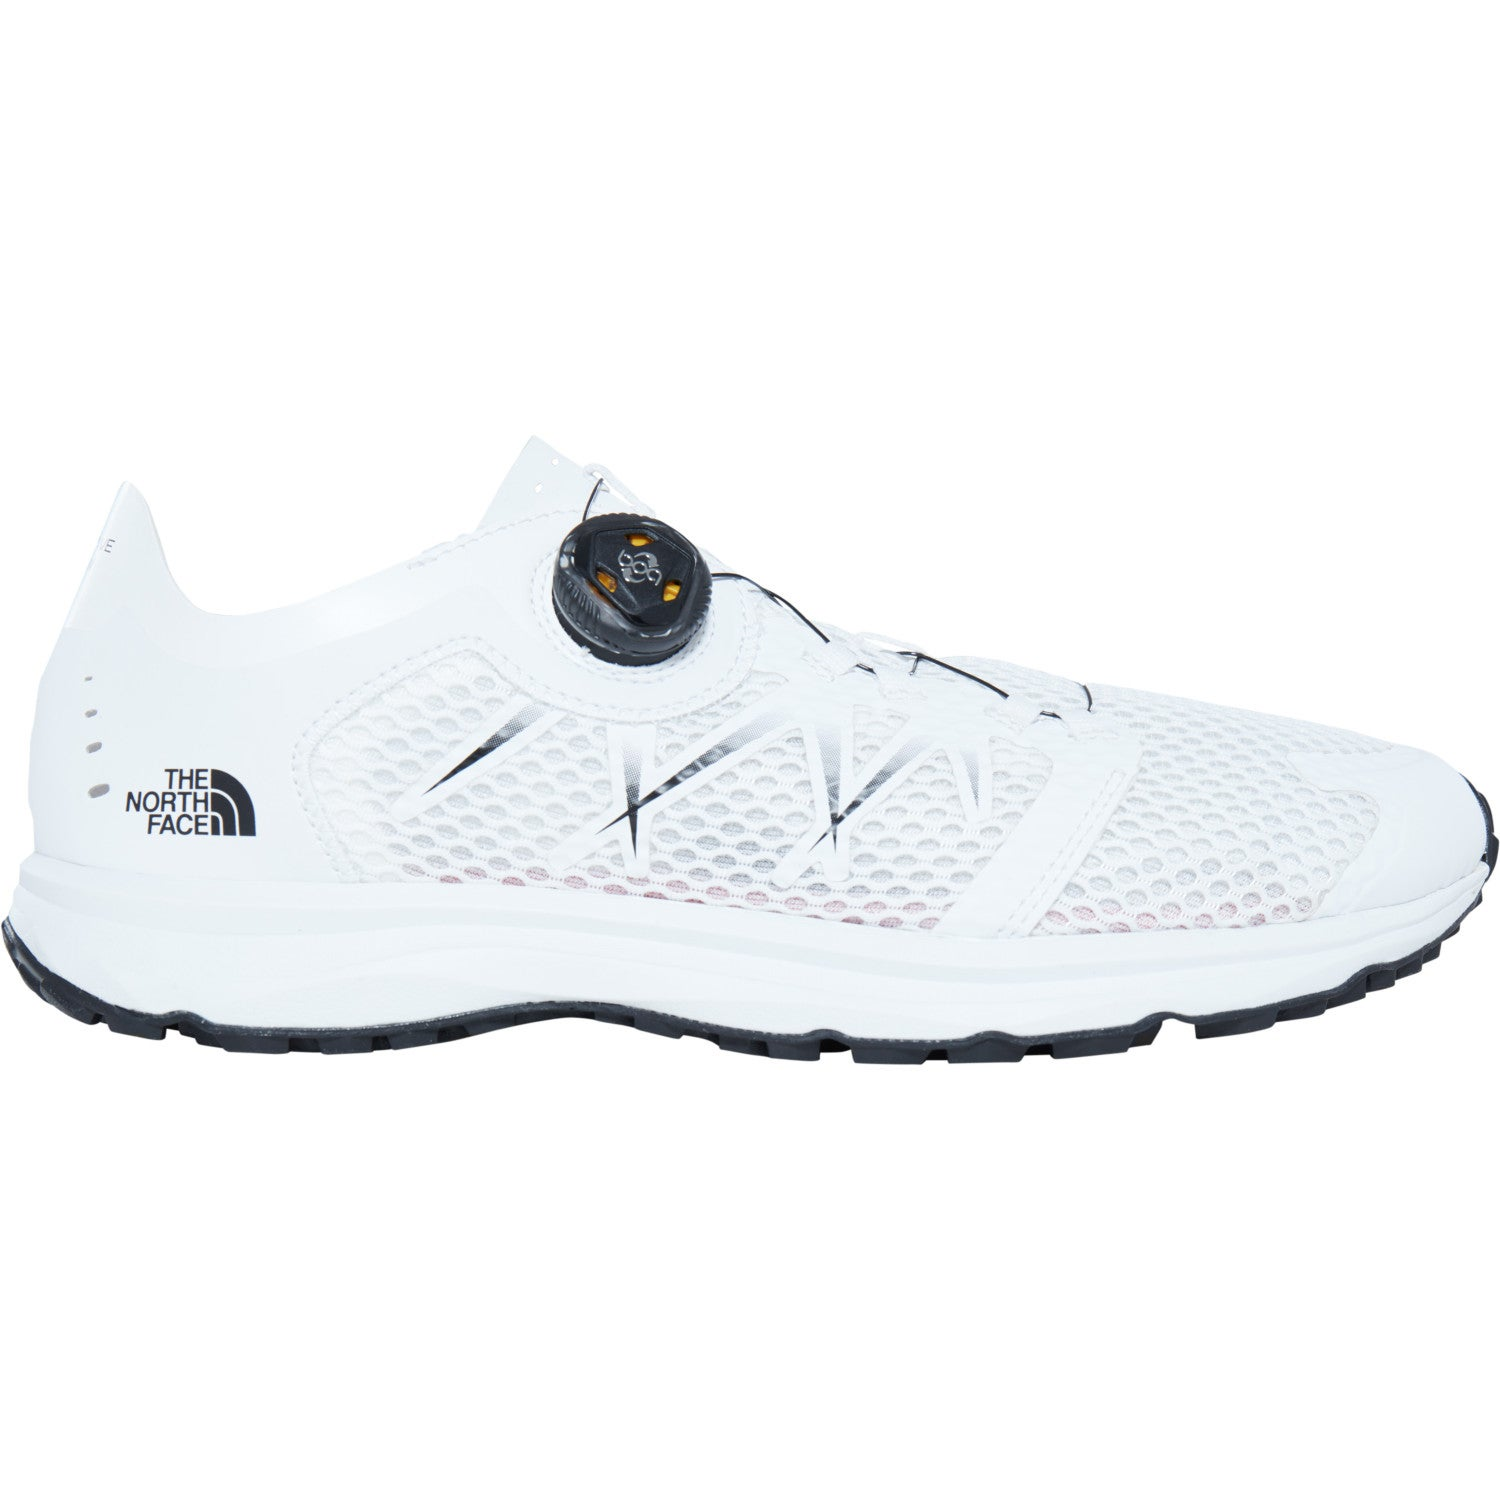 The North Face Litewave Flow Boa Mens Footwear Shoe - Tnf White All ... b16a0eaa8e68